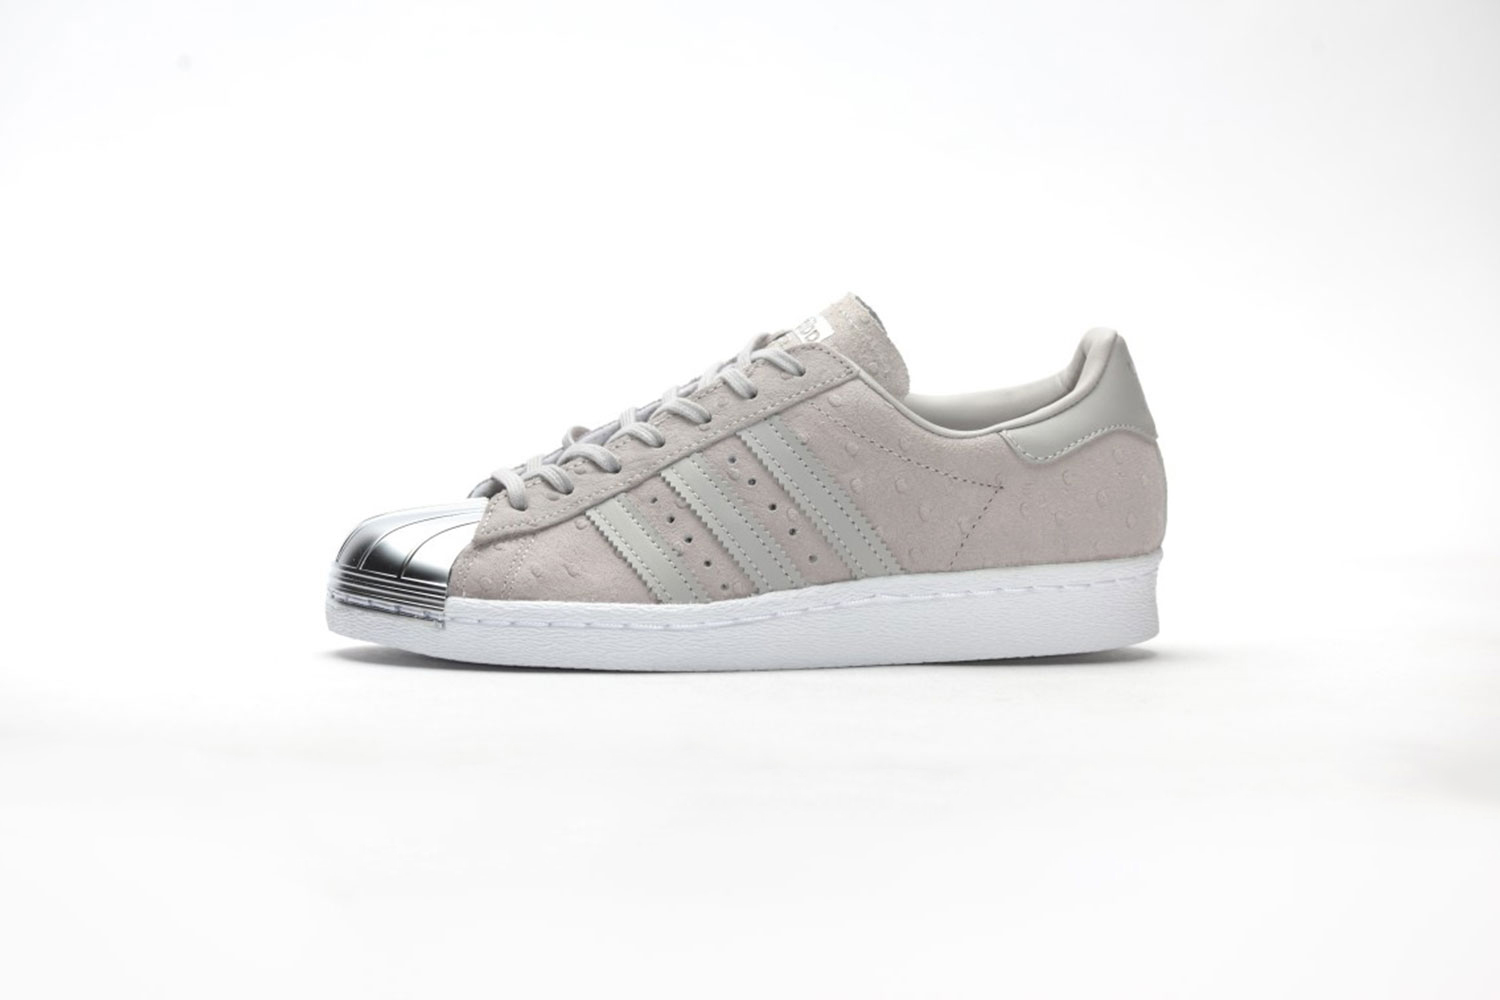 adidas 80s metal toe grey